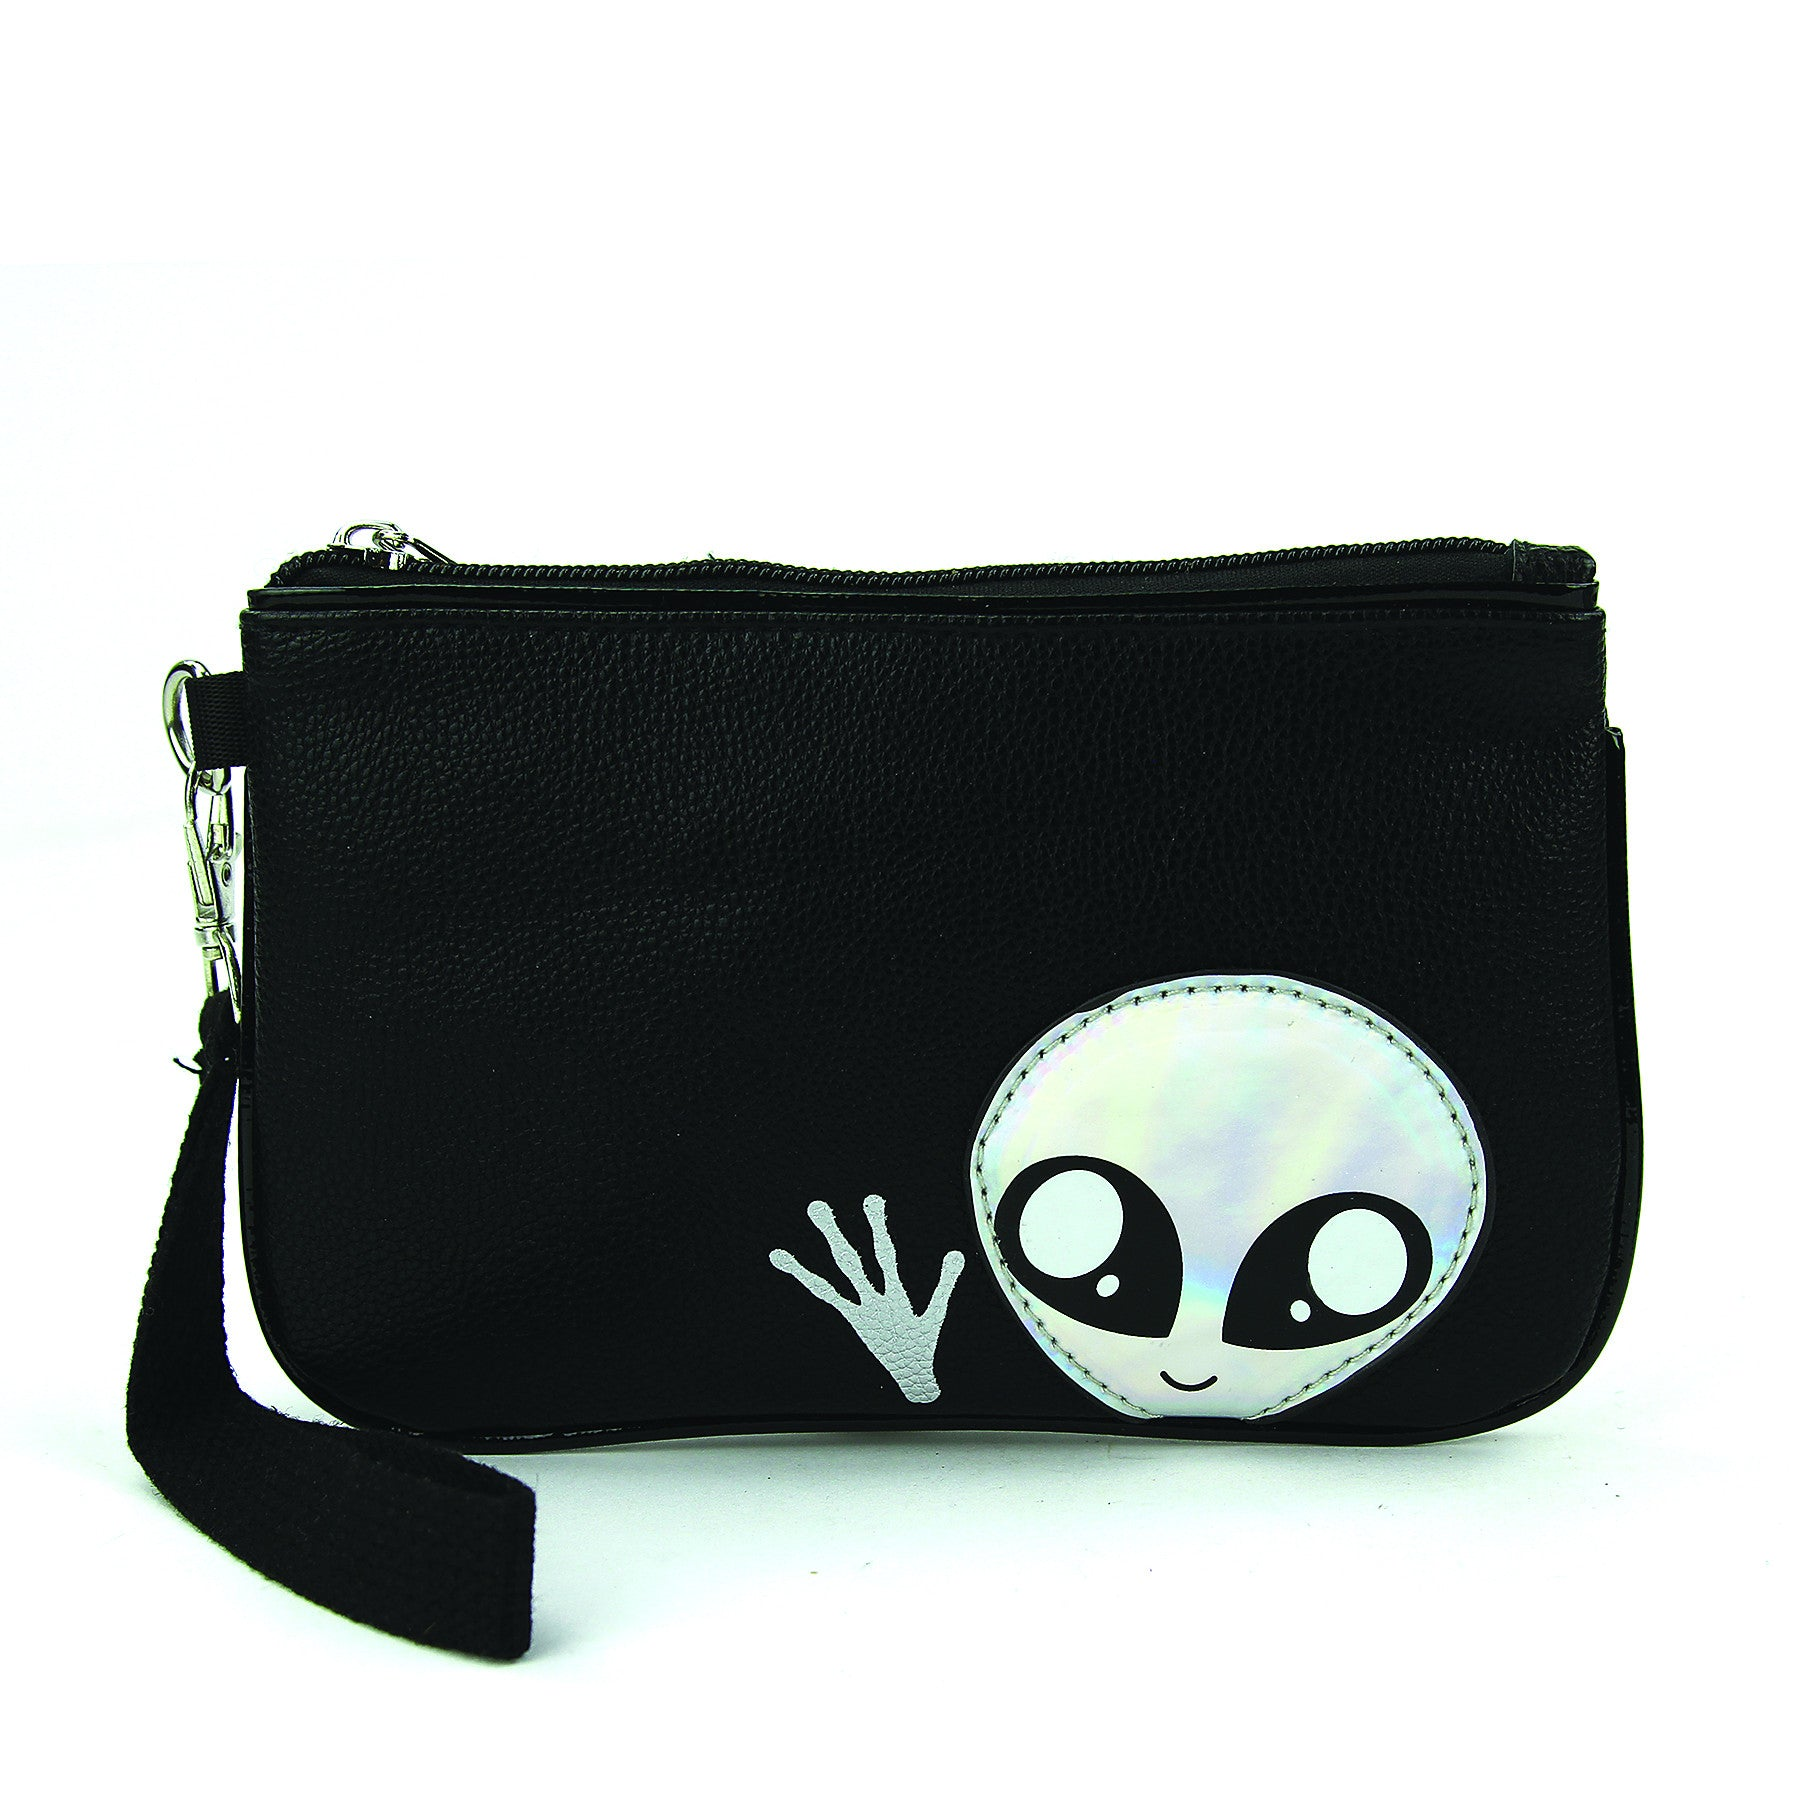 Sleepyville Critters - Friendly Alien Wristlet in Vinyl